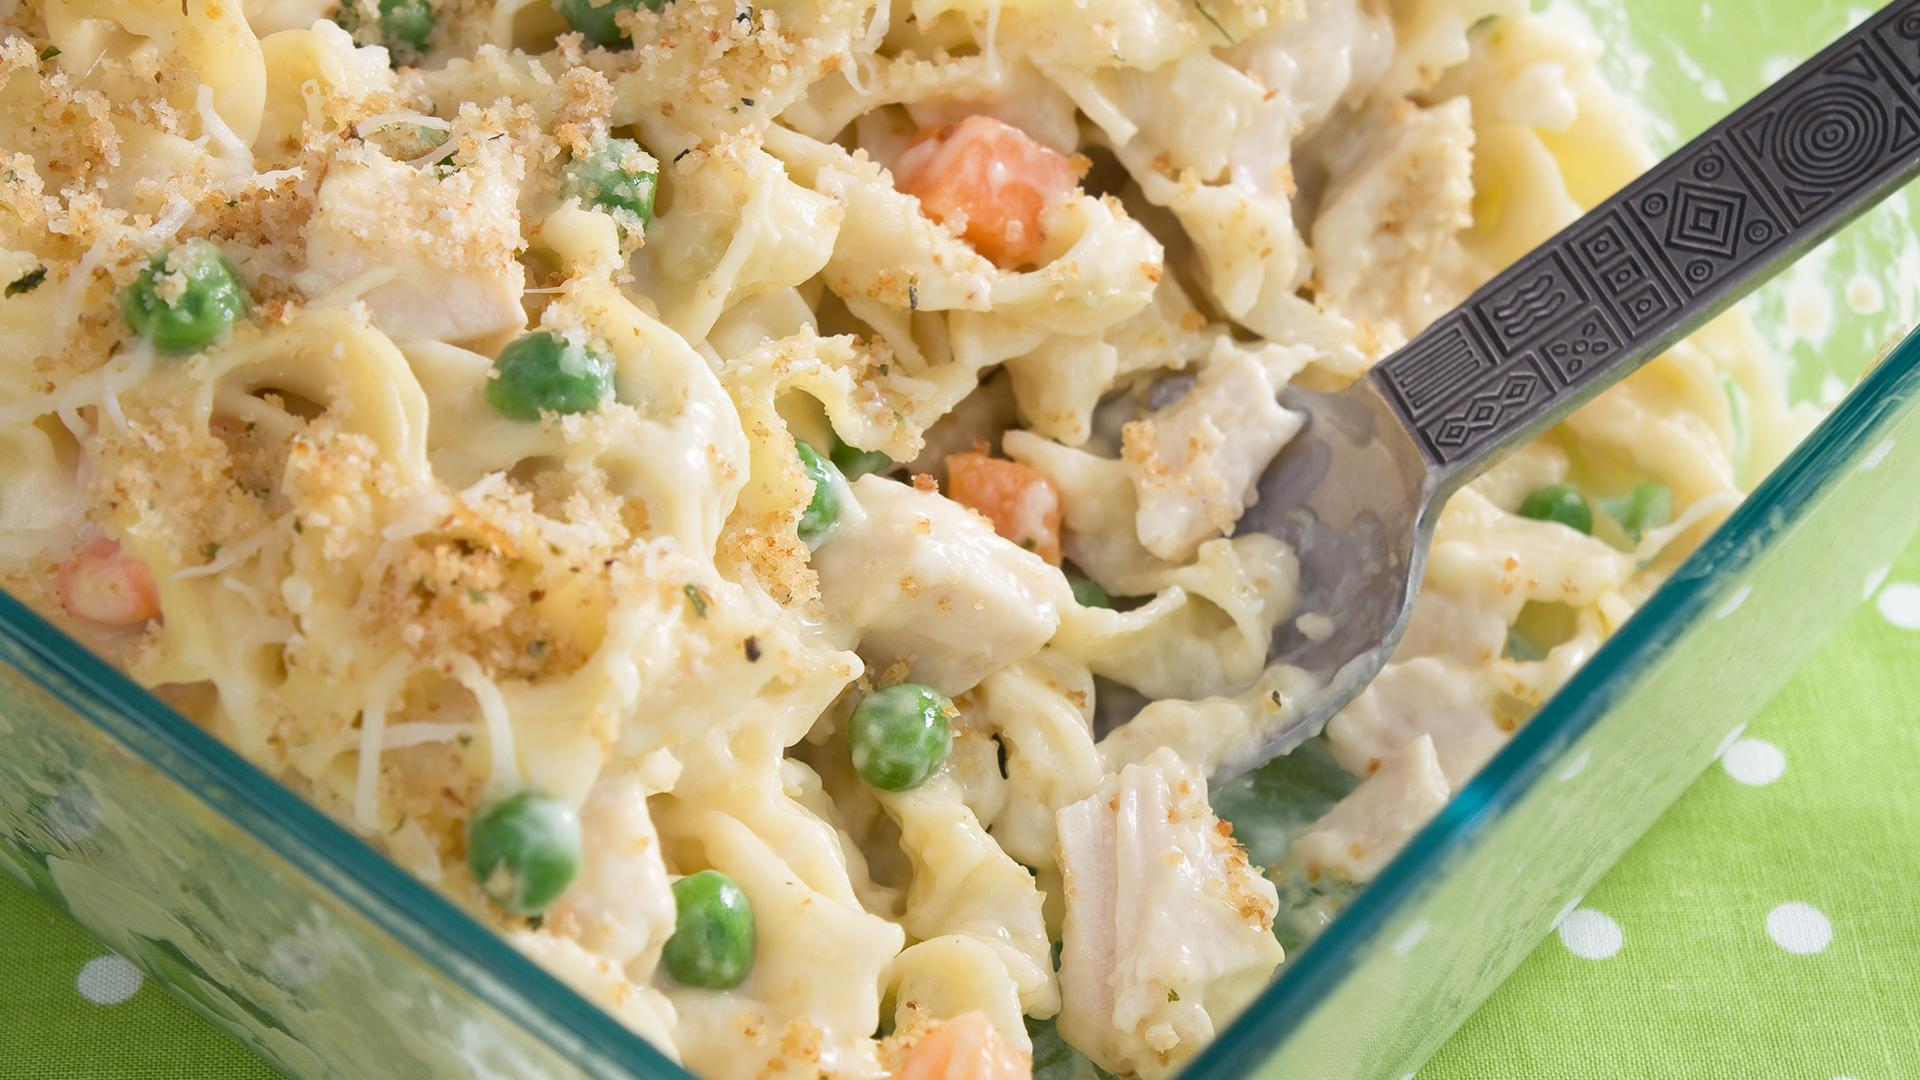 Freezer To Oven Entree Chicken Casserole Dinner Rachael Ray Show